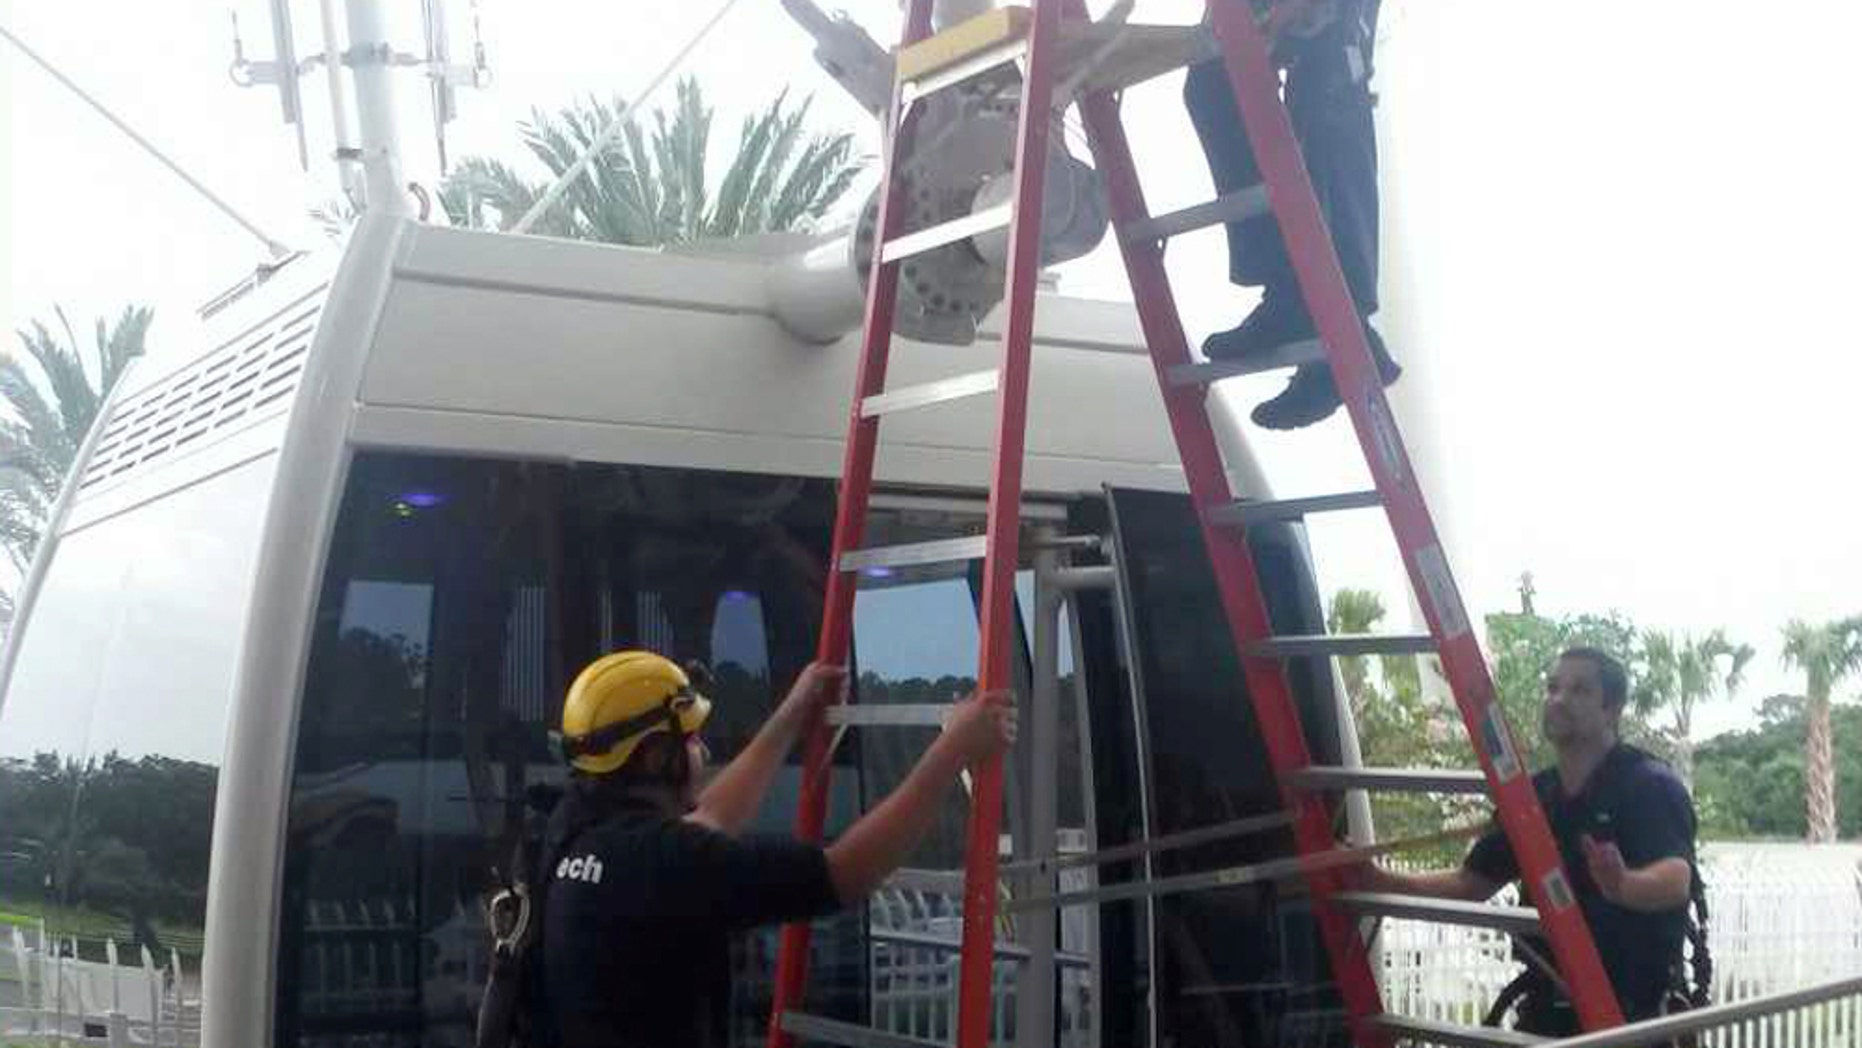 In this photo provided by Orange County Fire Rescue, a technical crew with The Orlando Eye Ferris wheel work to evacuated passengers after it stopped in Orlando, Fla., Friday, July 3, 2015. Orange County Fire Rescue spokeswoman Kathleen Kennedy told The Associated Press no one was hurt and all were taken off in an operation lasting about three hours with help from firefighters. (Orange County Fire Rescue via AP)